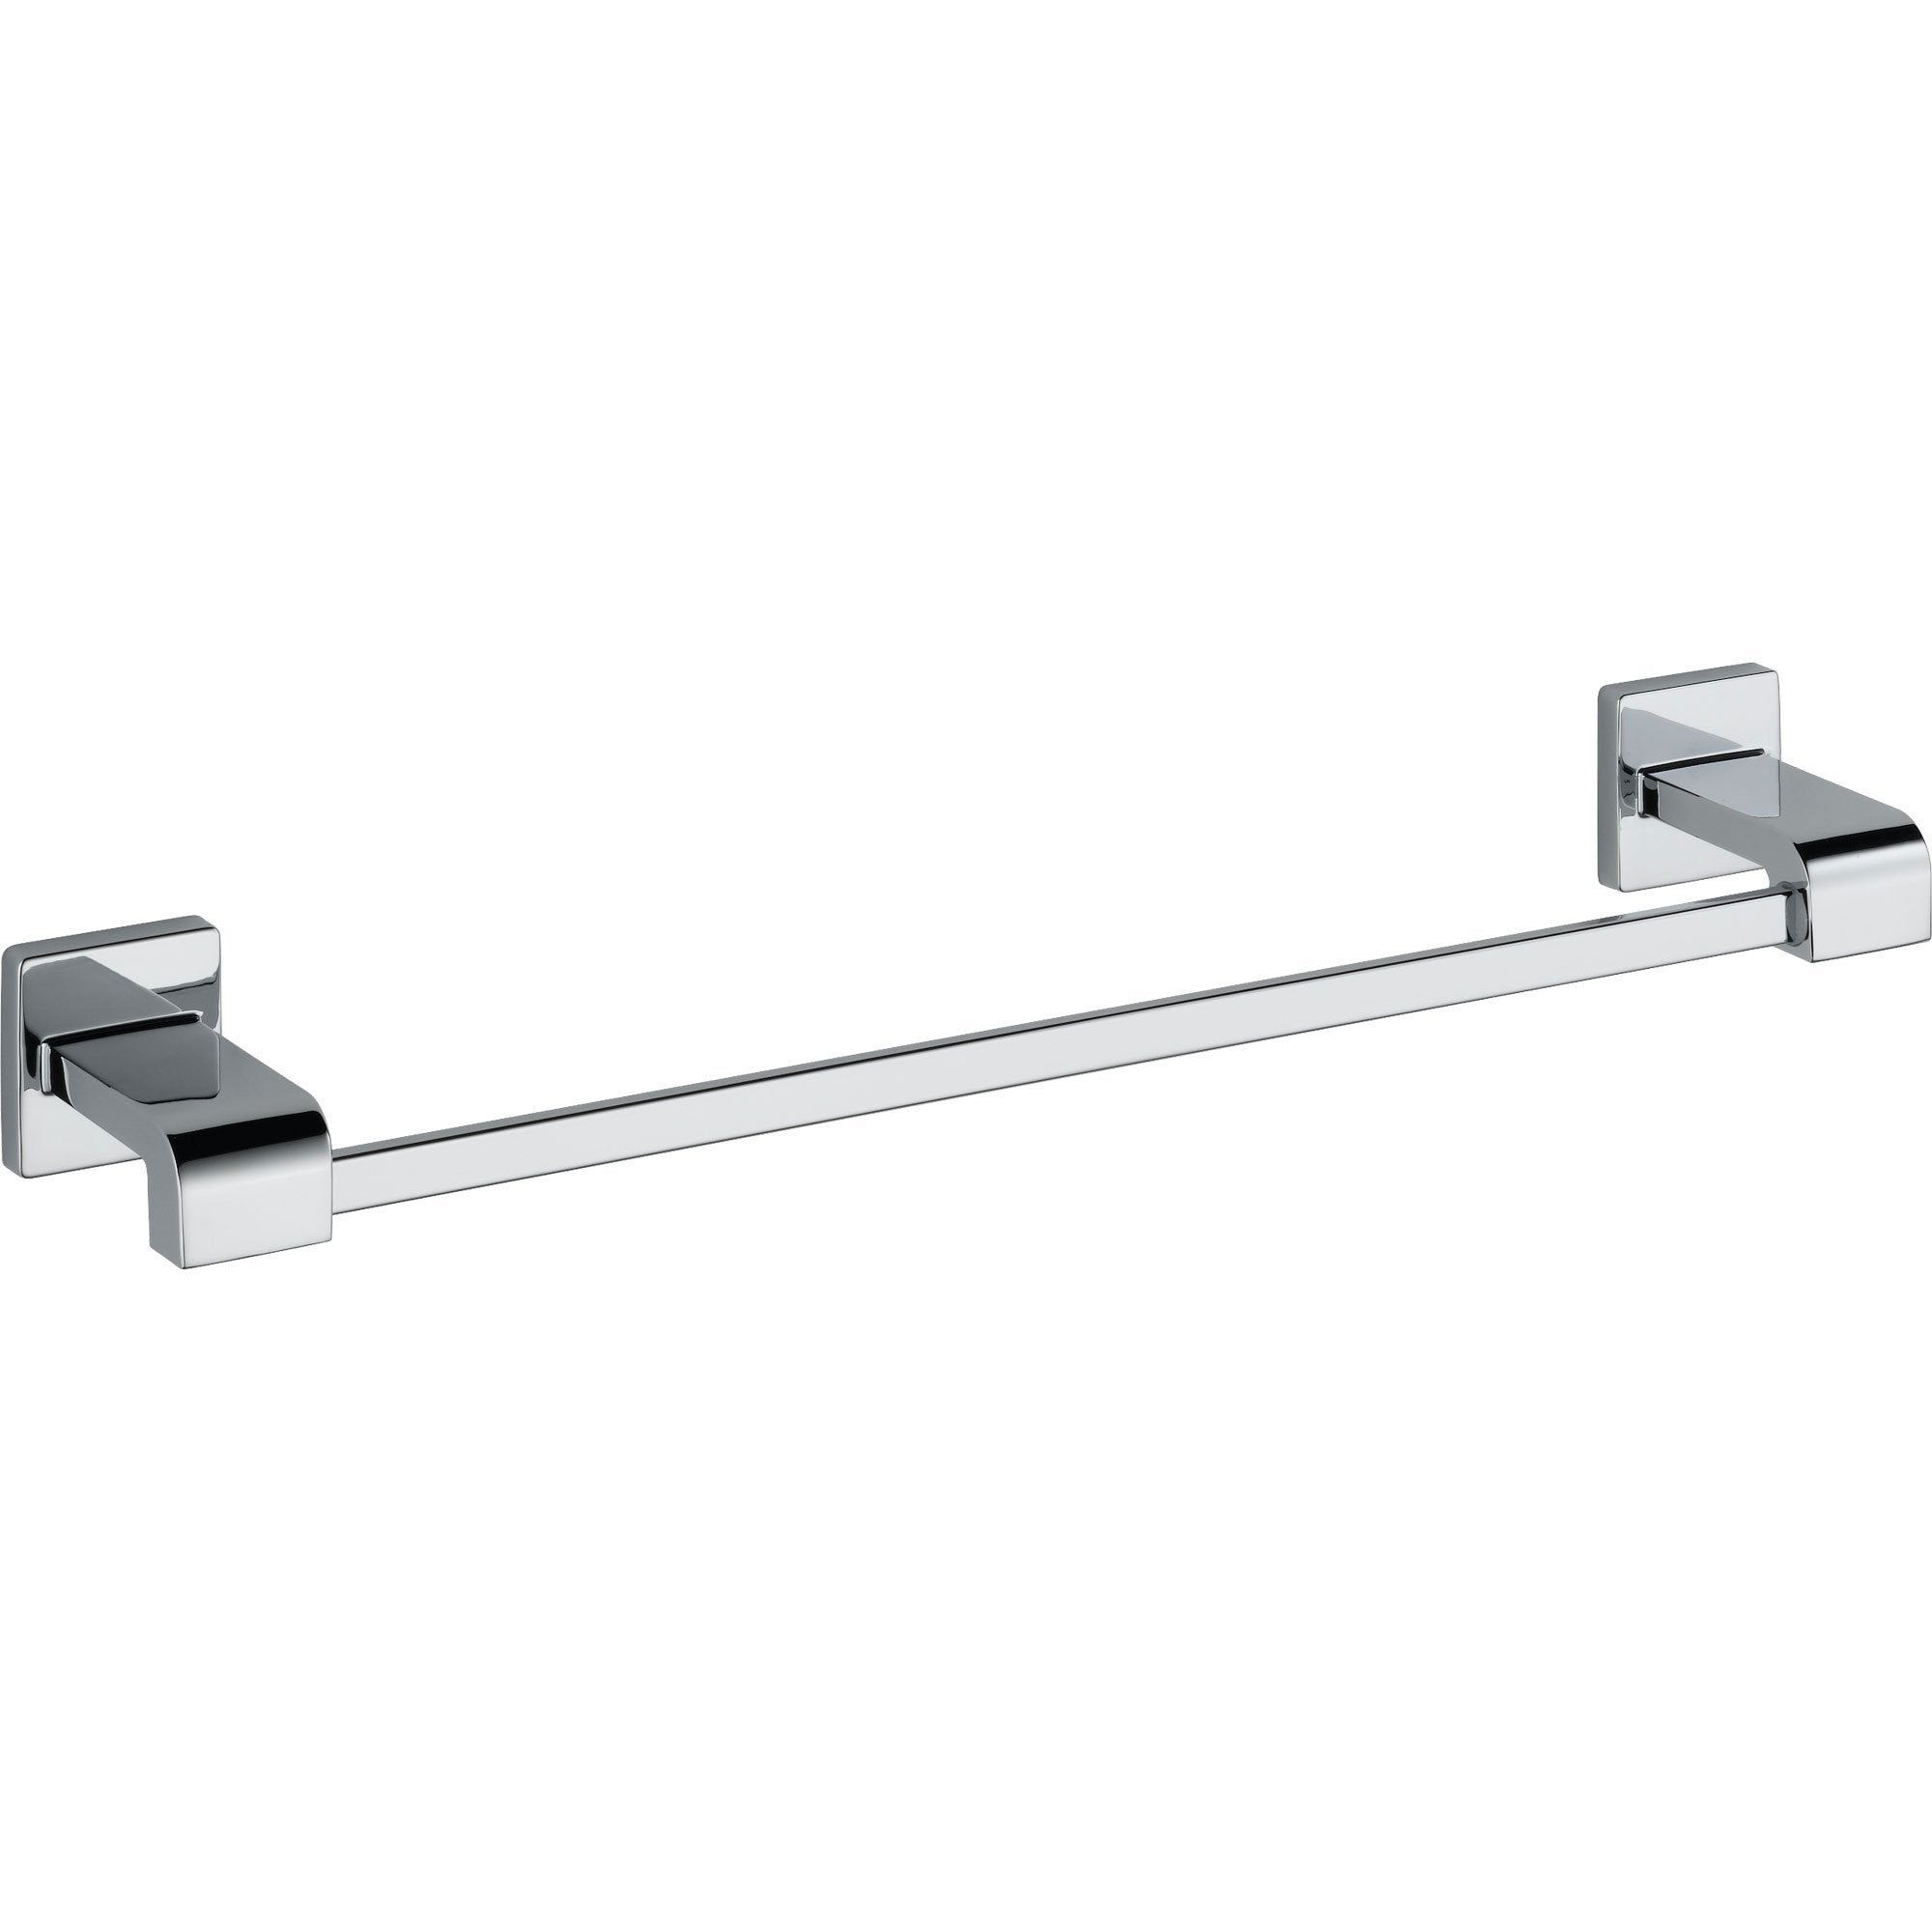 Delta Arzo 18 inch Modern Chrome Single Towel Bar 353037